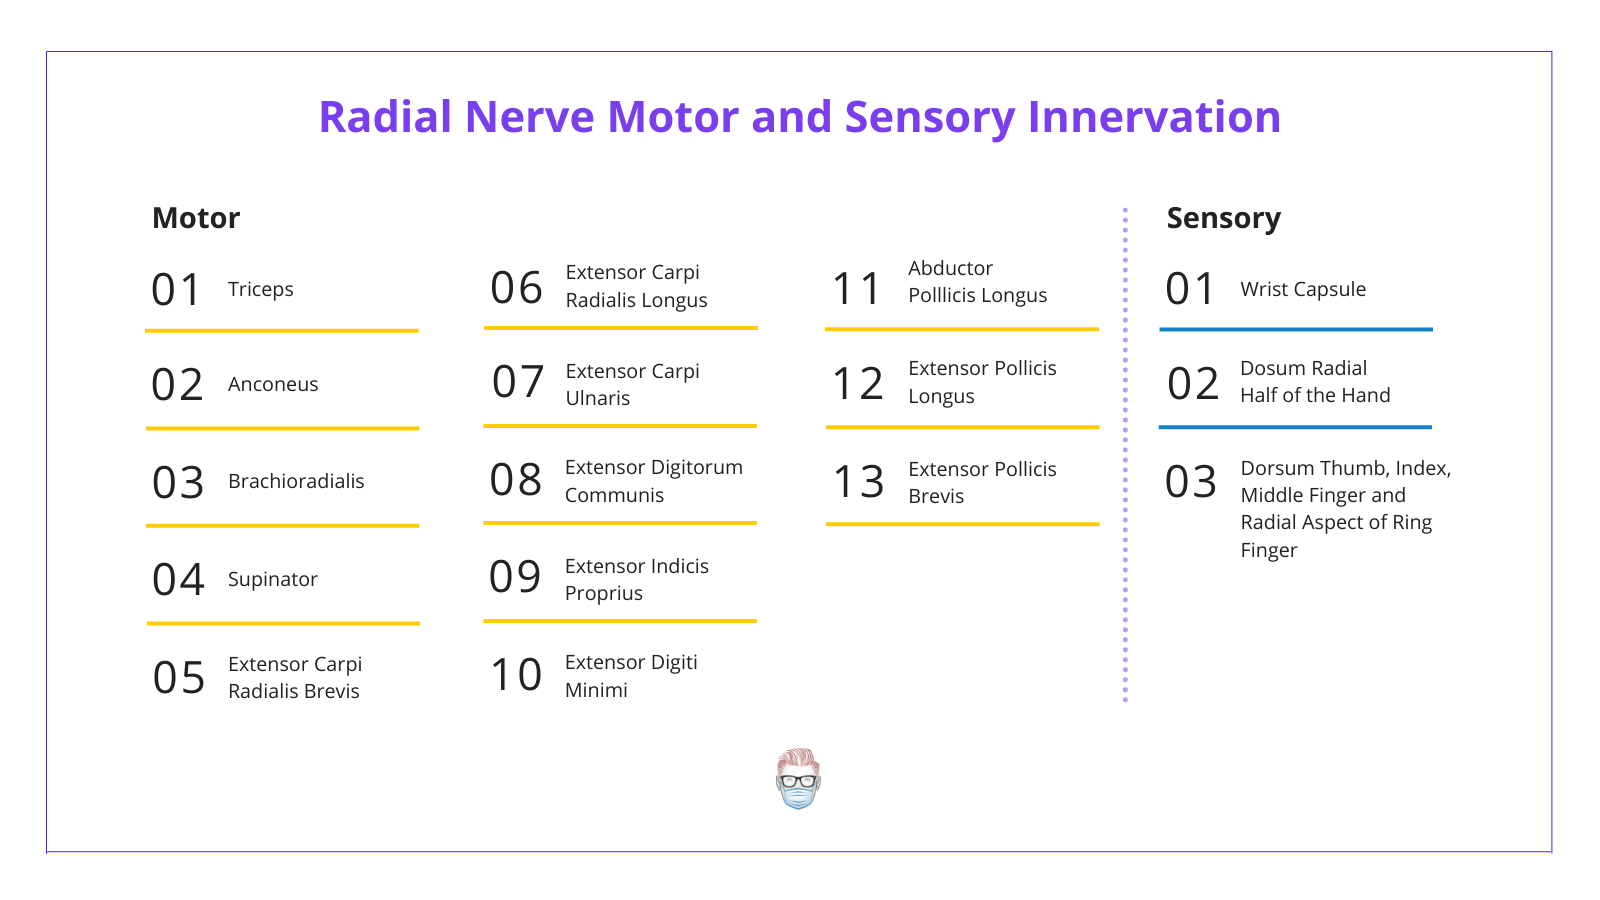 Radial Nerve Motor and Sensory Innervation to Skin and Muscles, Triceps, Extensors, Hand